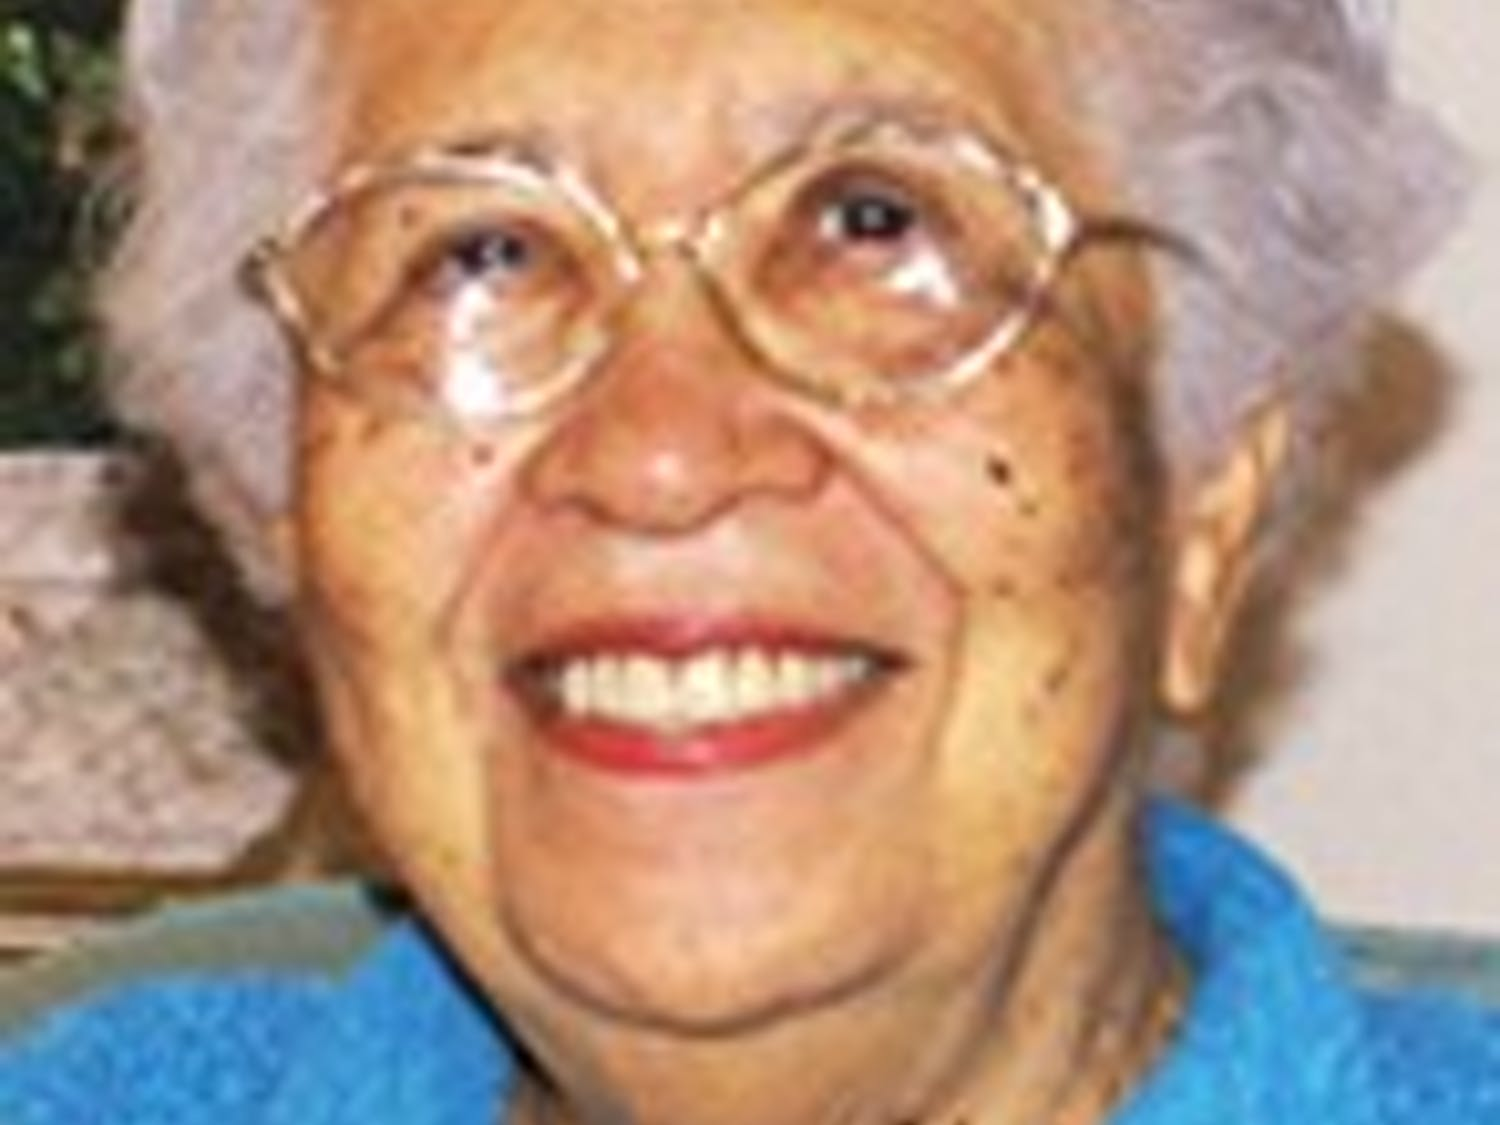 Hortense McClinton joined the School of Social Work at UNC in the fall of 1966.